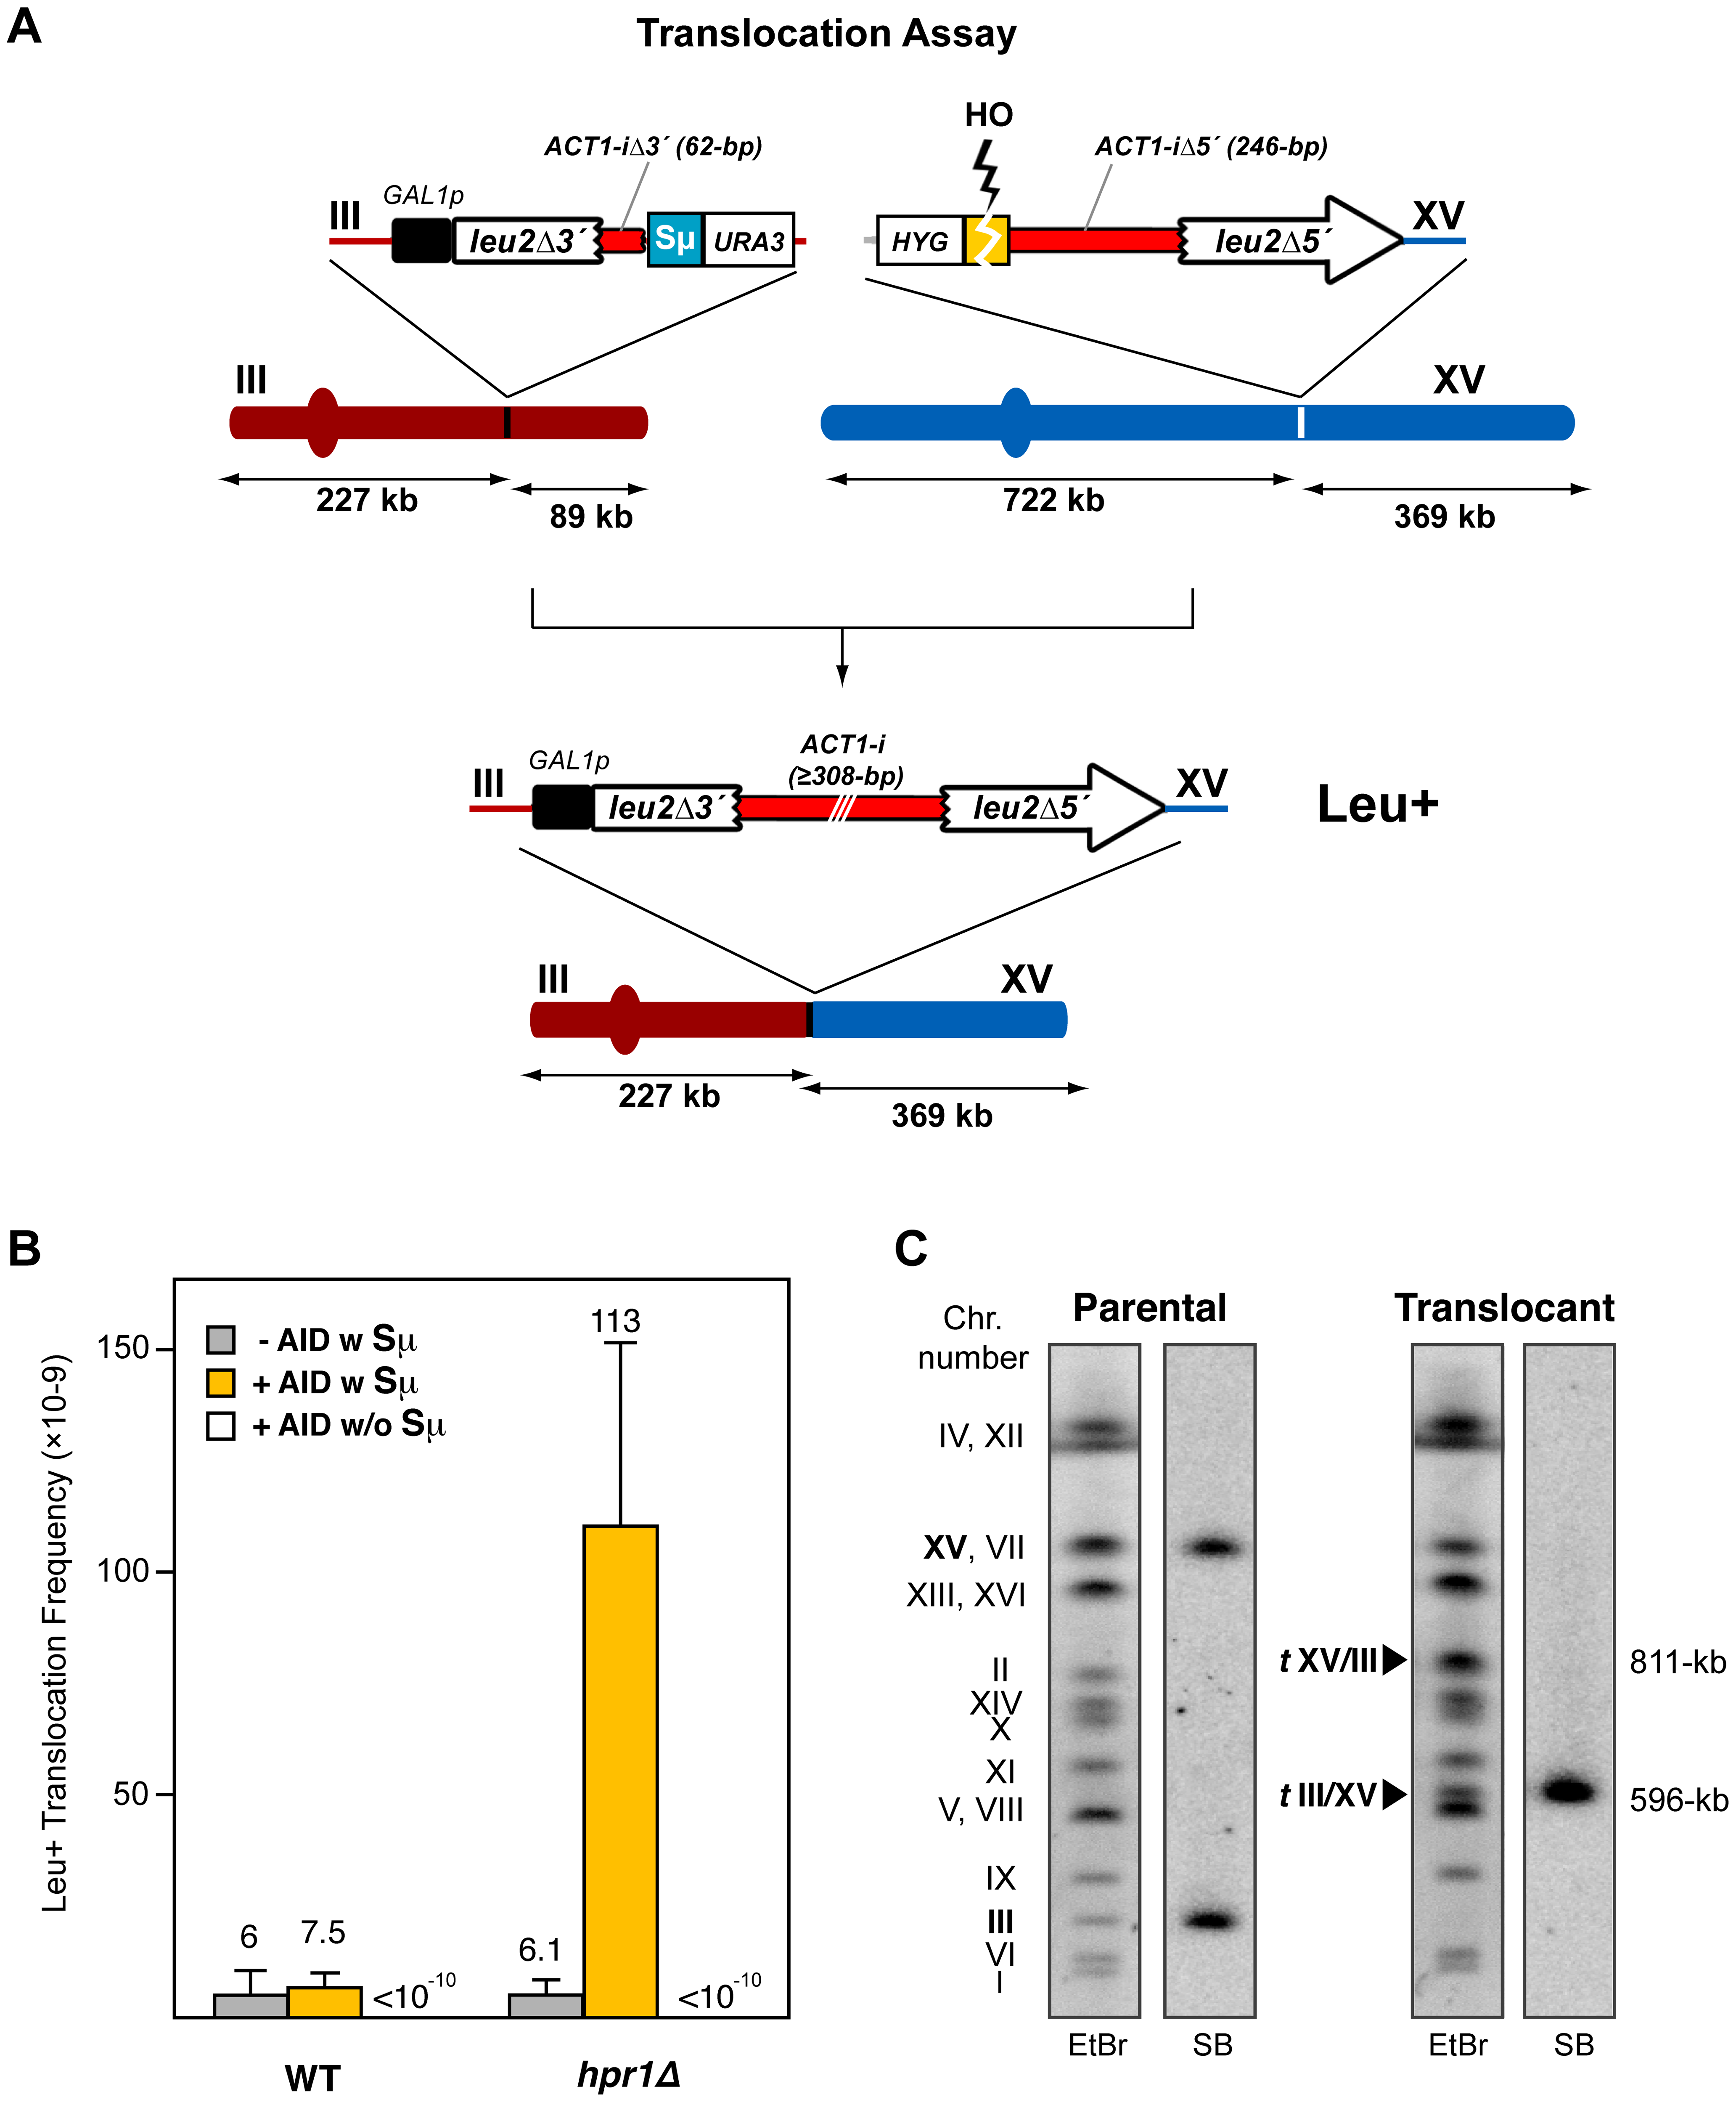 Intron-based assay for chromosomal translocations in yeast.